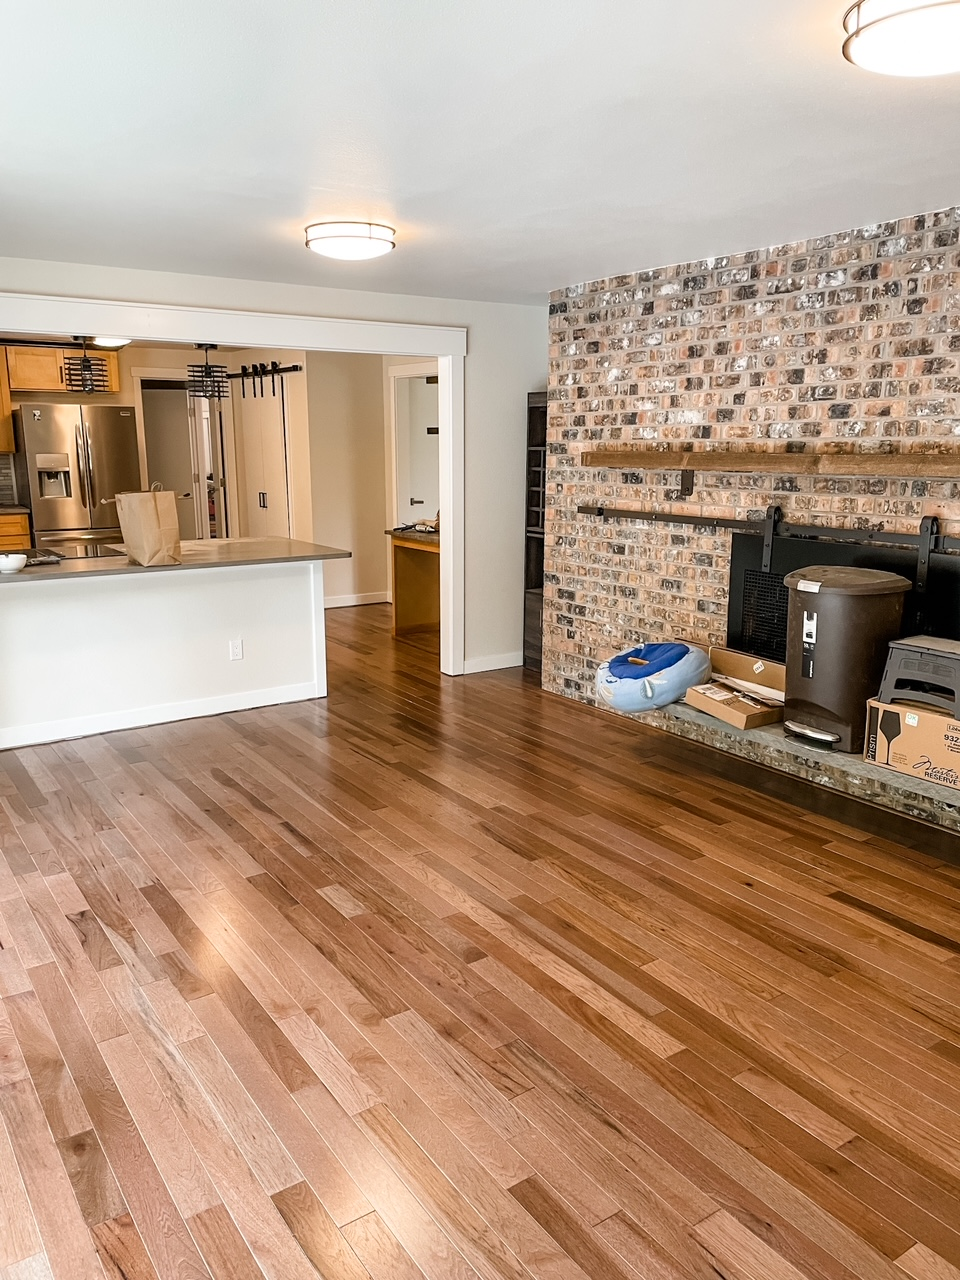 The after portion of the wooden flooring Remodeling Before and After - a warmer color of wood